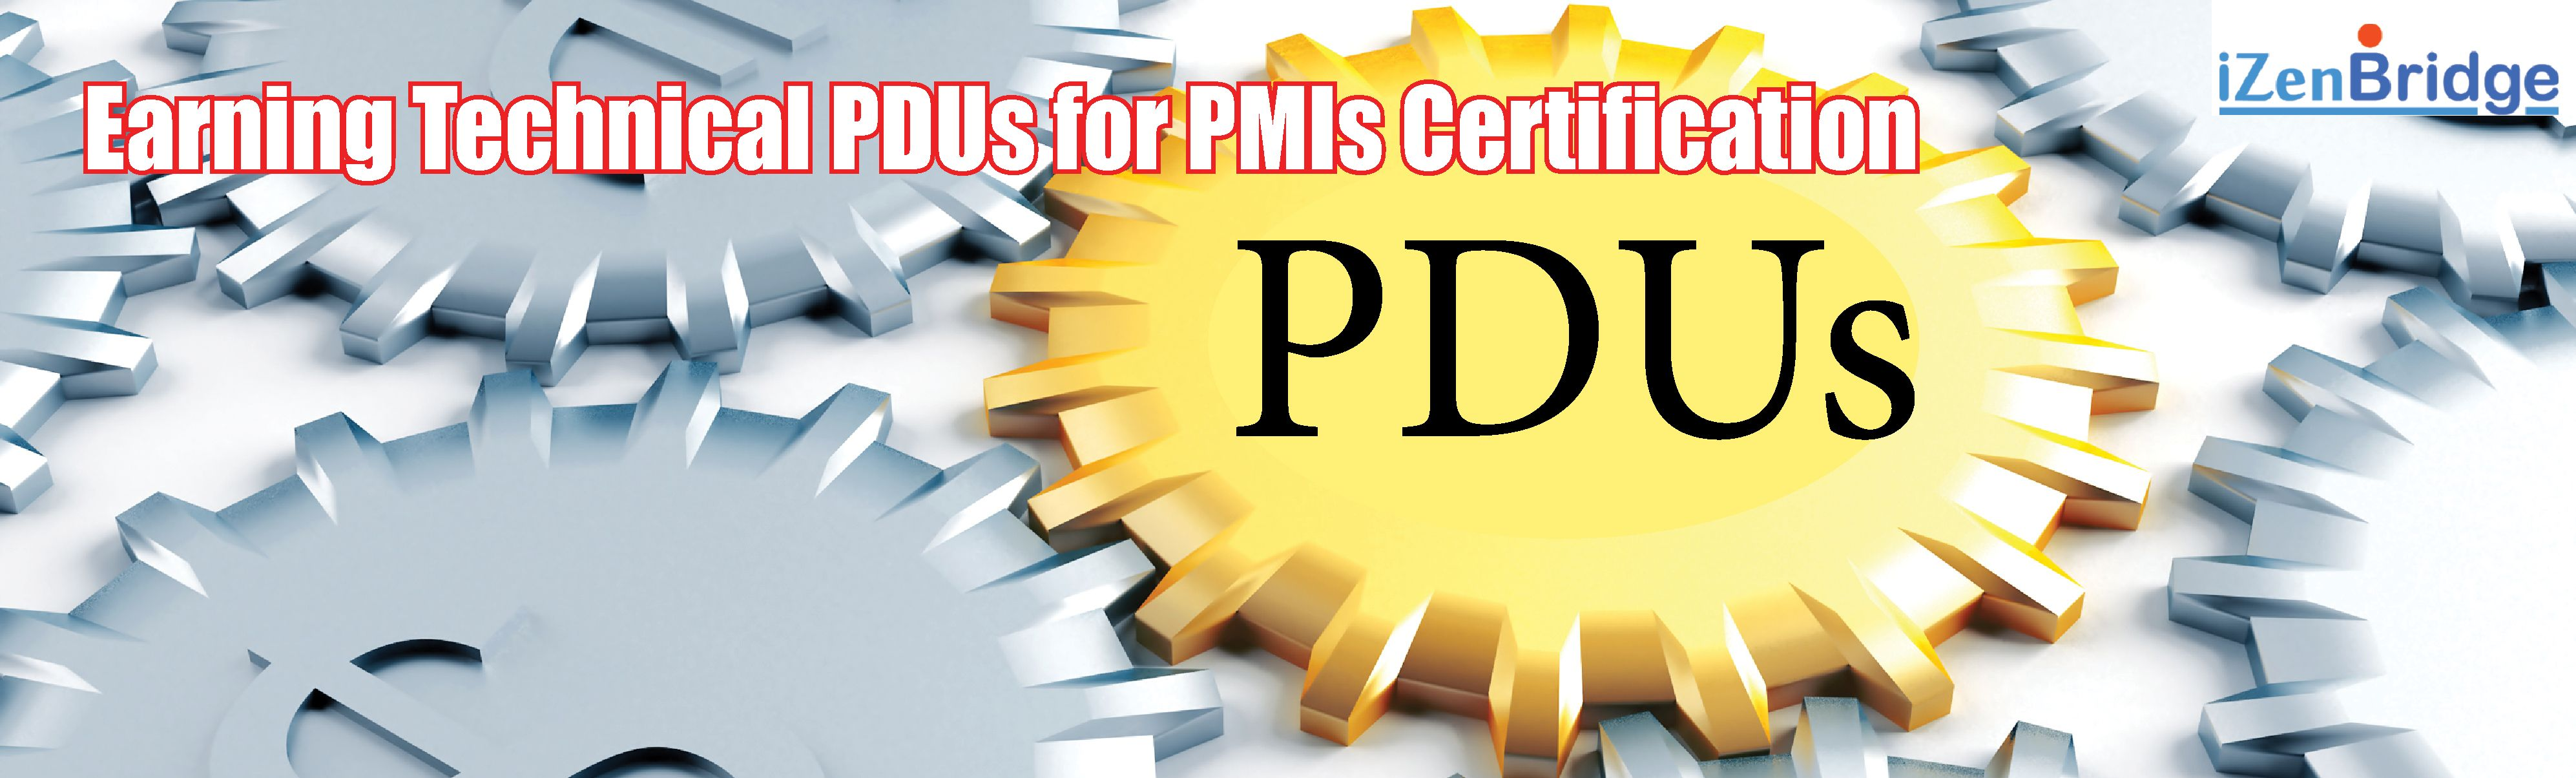 Earning Technical Pdus For Pmp Pmi Acp And Pmi Pba Certifications